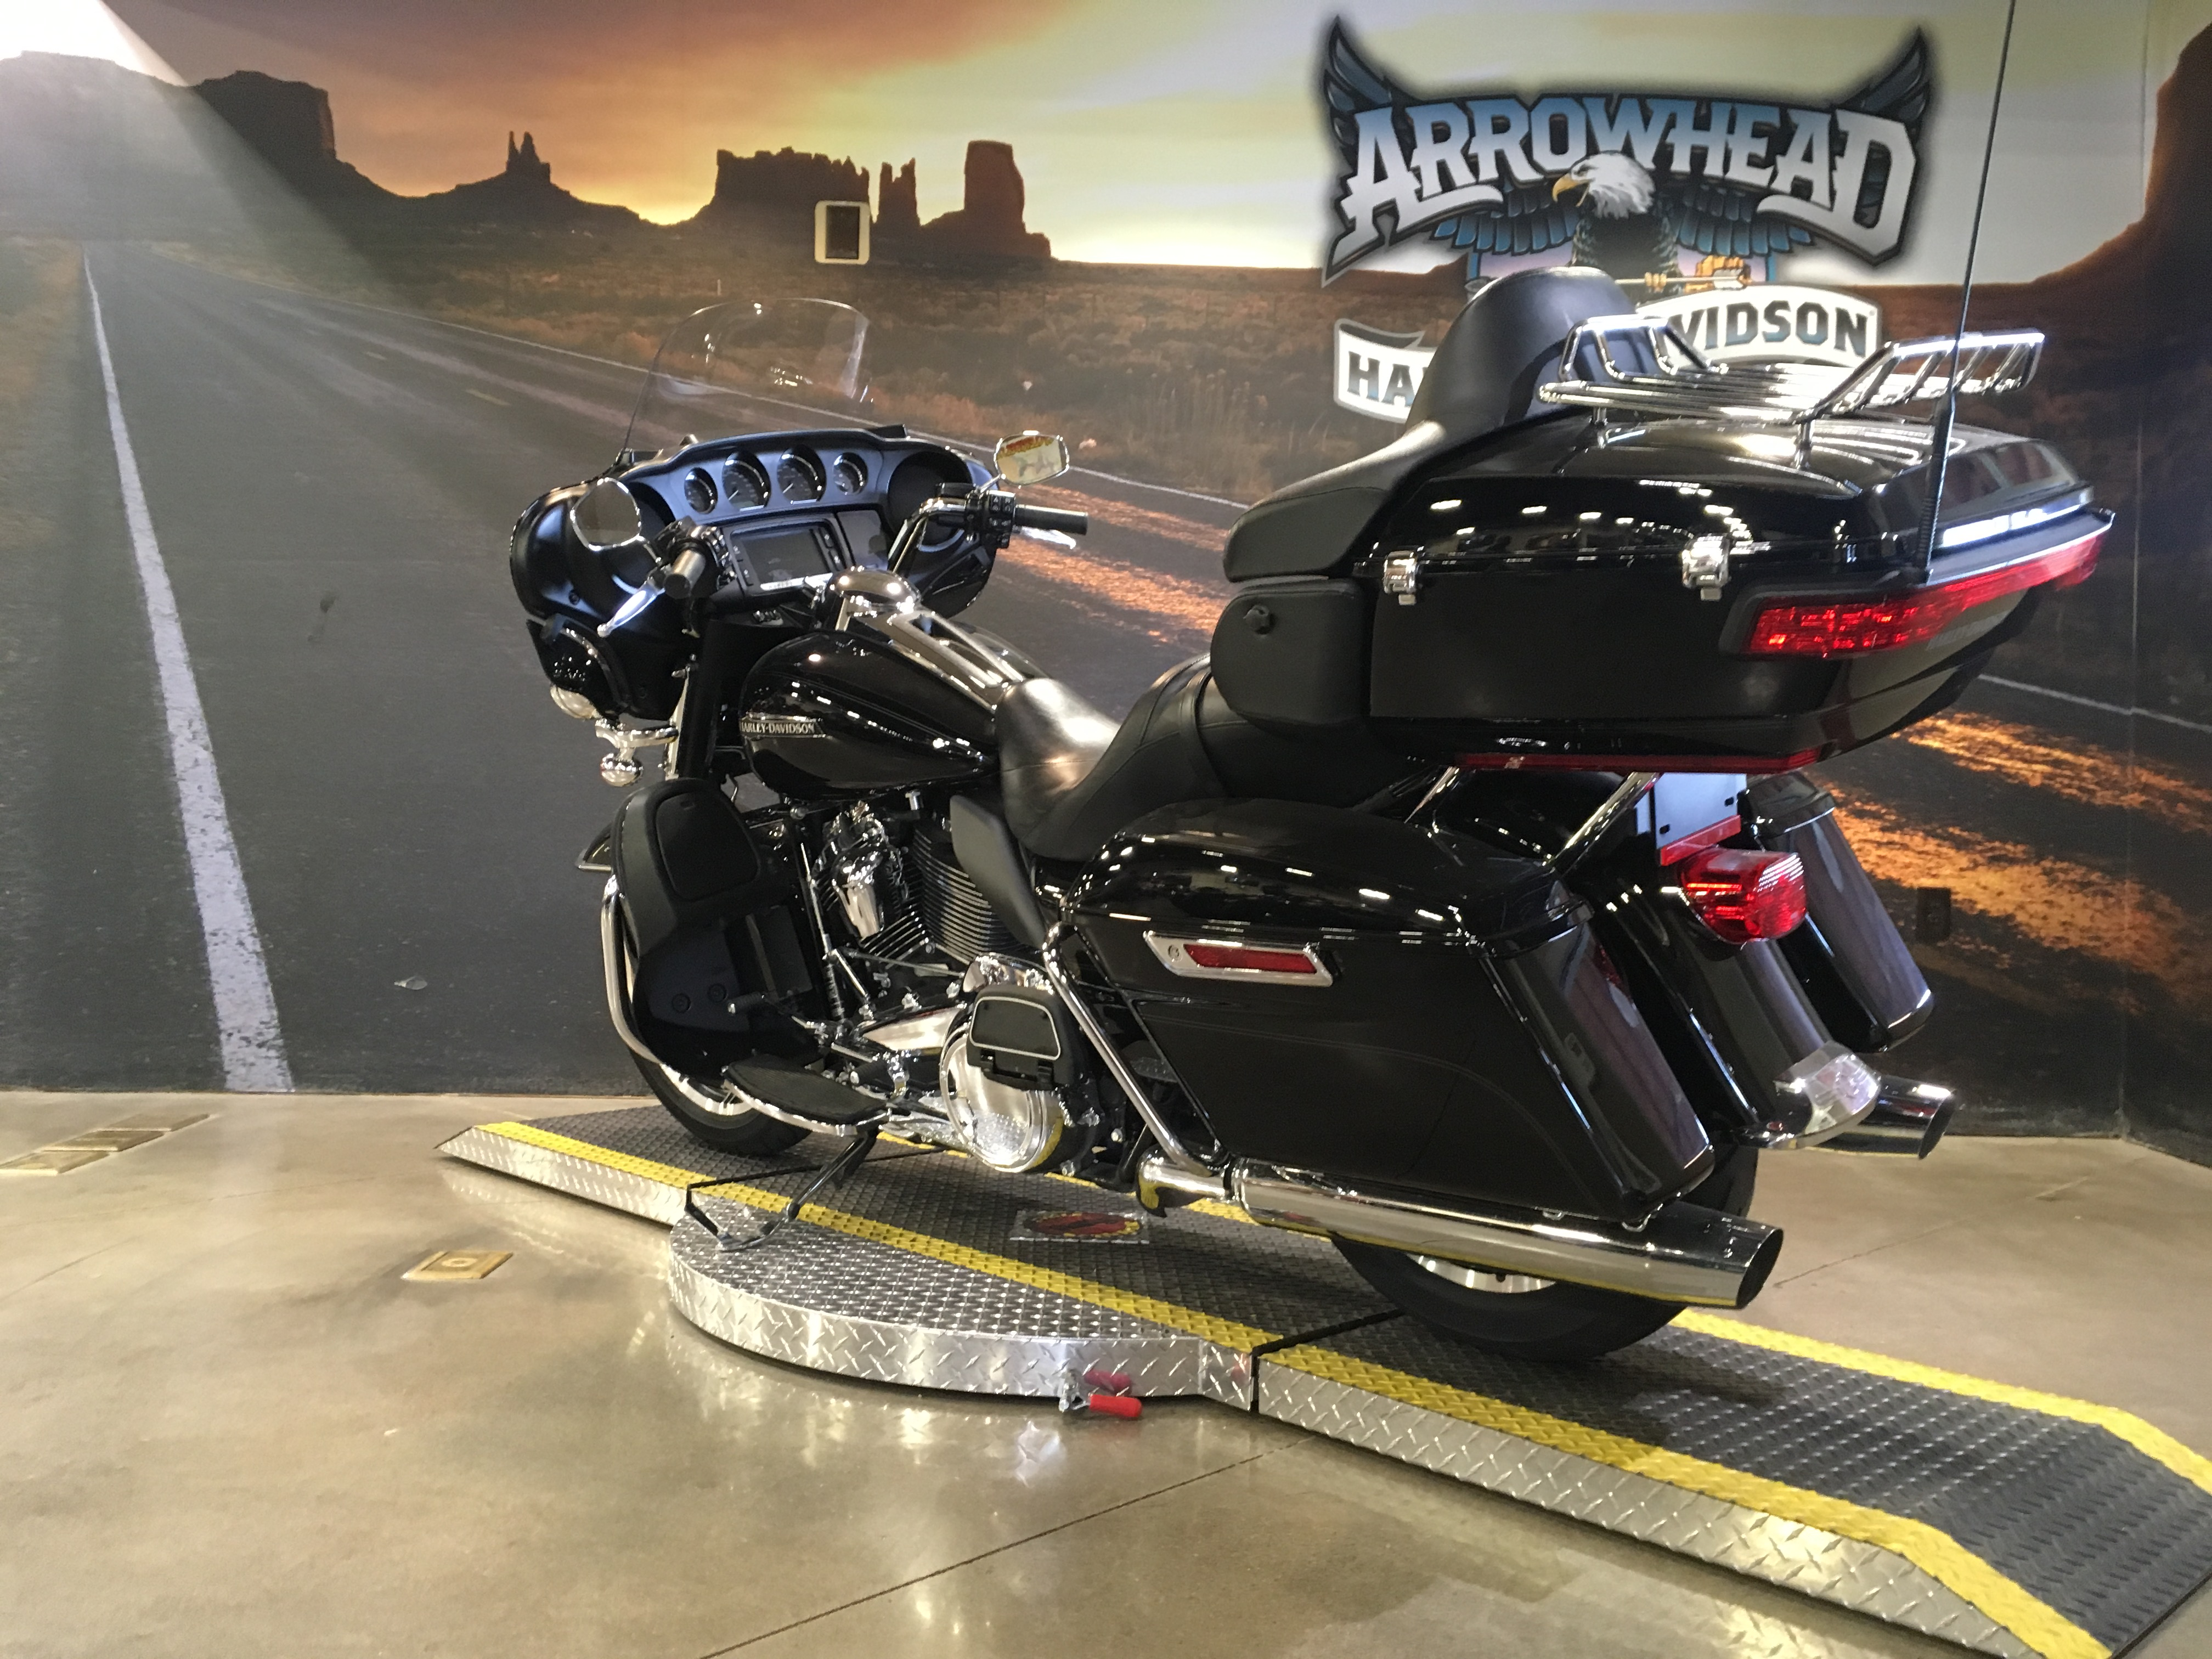 Pre-Owned 2018 Harley-Davidson Electra Glide Ultra Classic